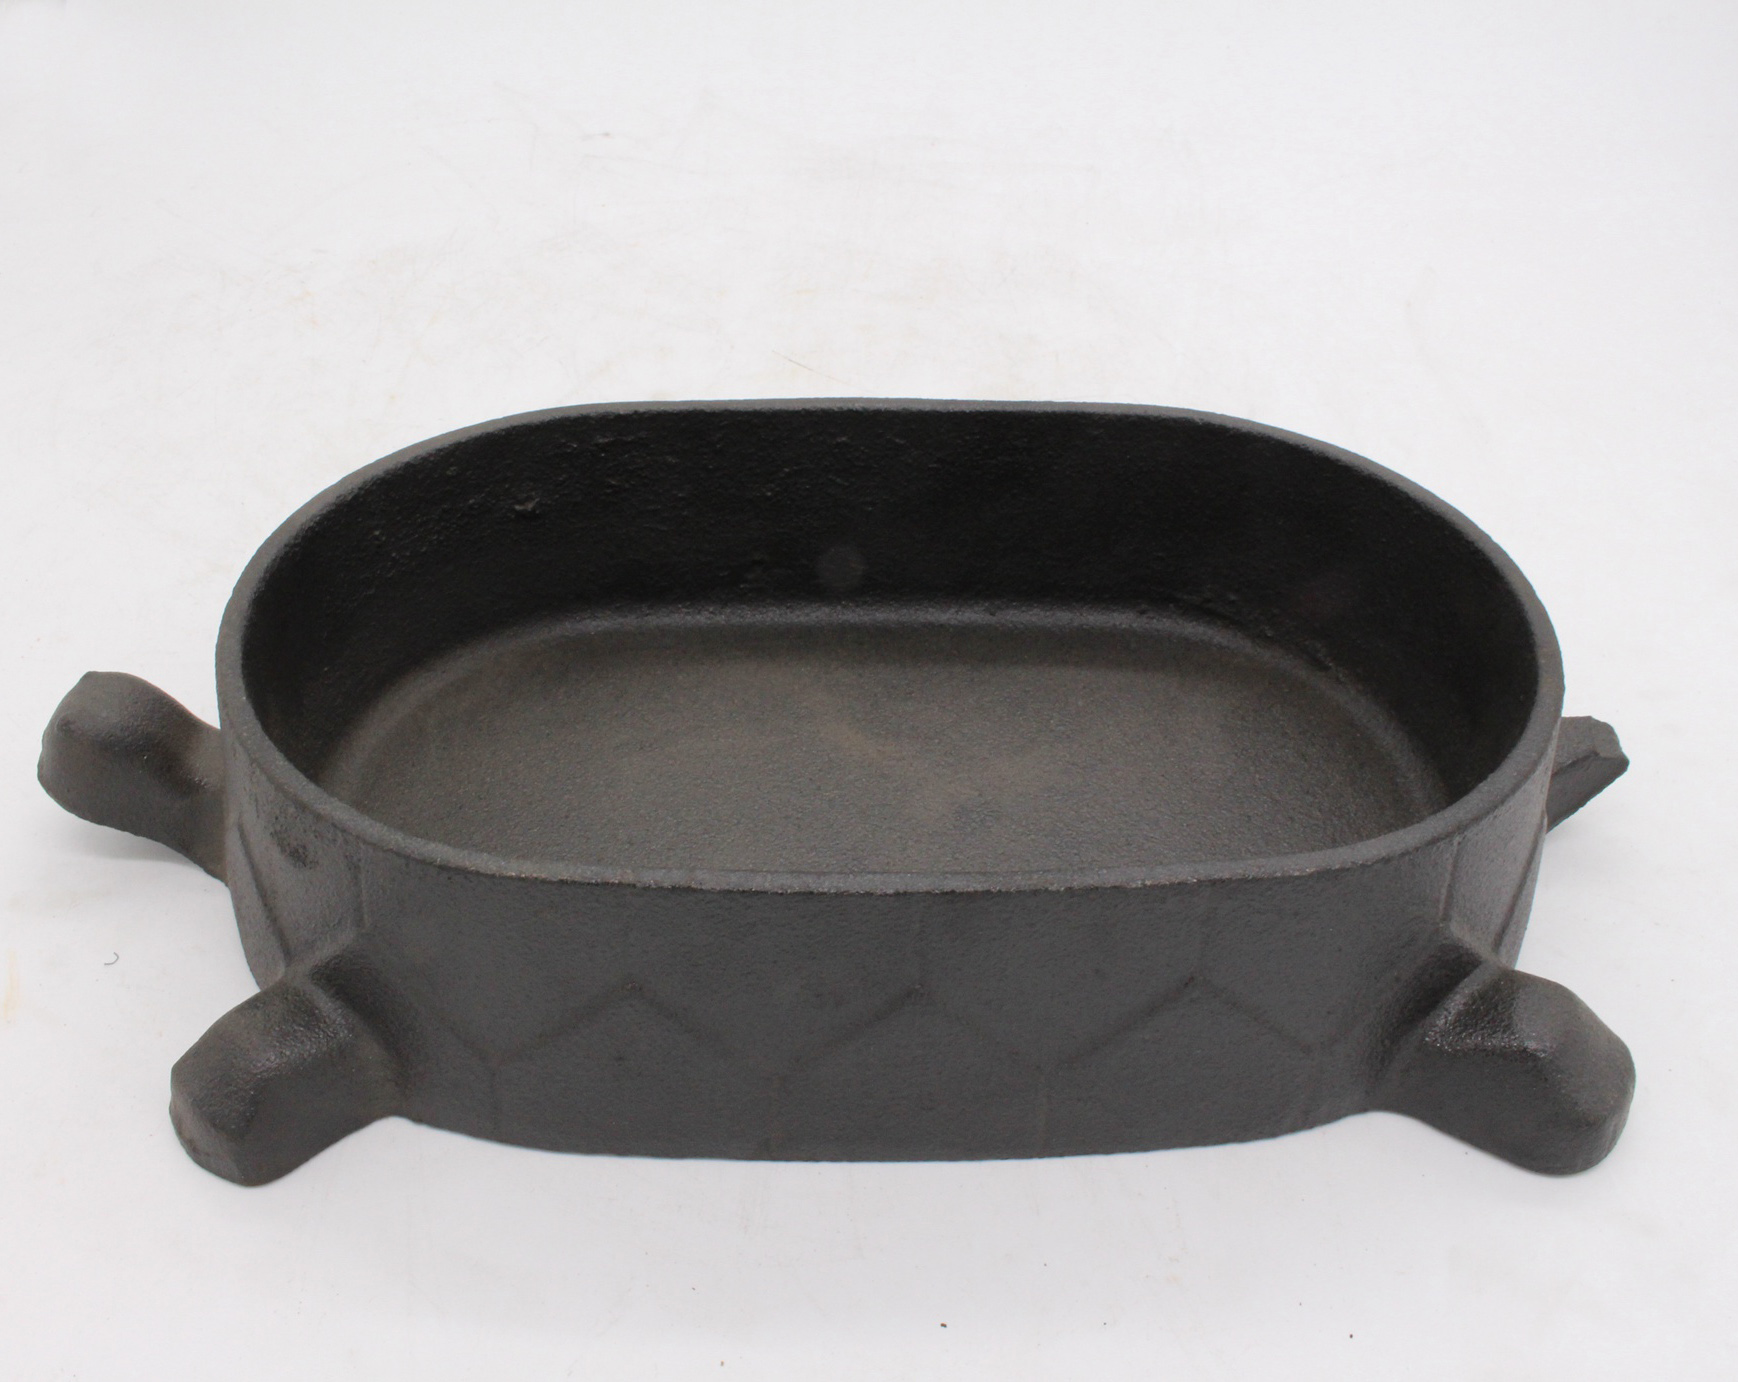 Cast iron fry pan skillet